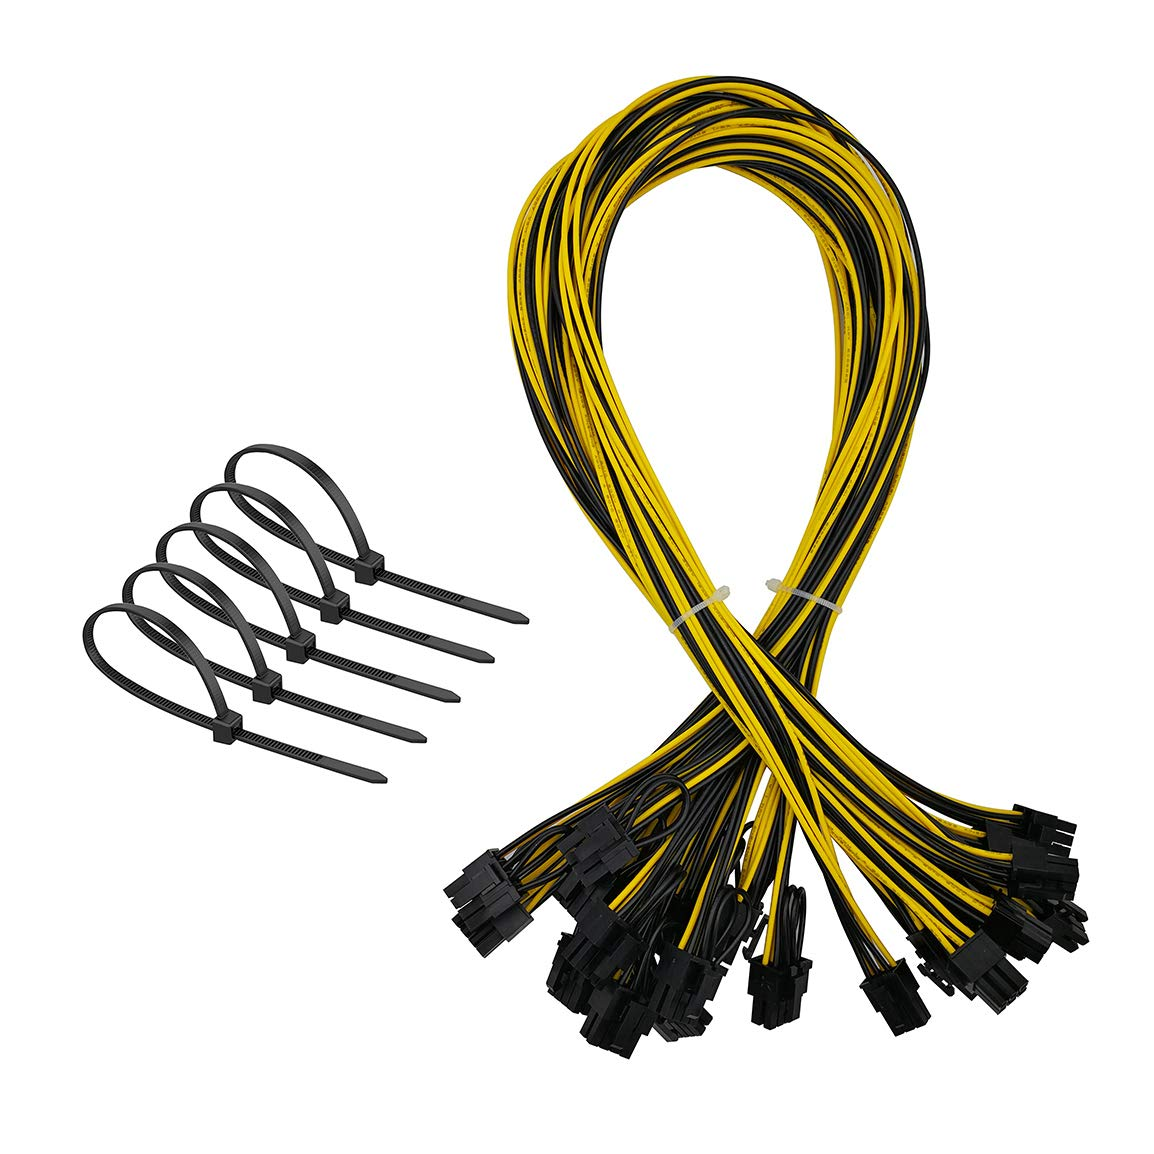 6Pin PCI-E to 8 (6+2) Pin Power Cable, Graphics Video Card PCI Express VGA Extension Power Supply Cable for GPU Ethereum ETH ZEC Mining (18AWG, 27.5 Inch, 12-Pack)